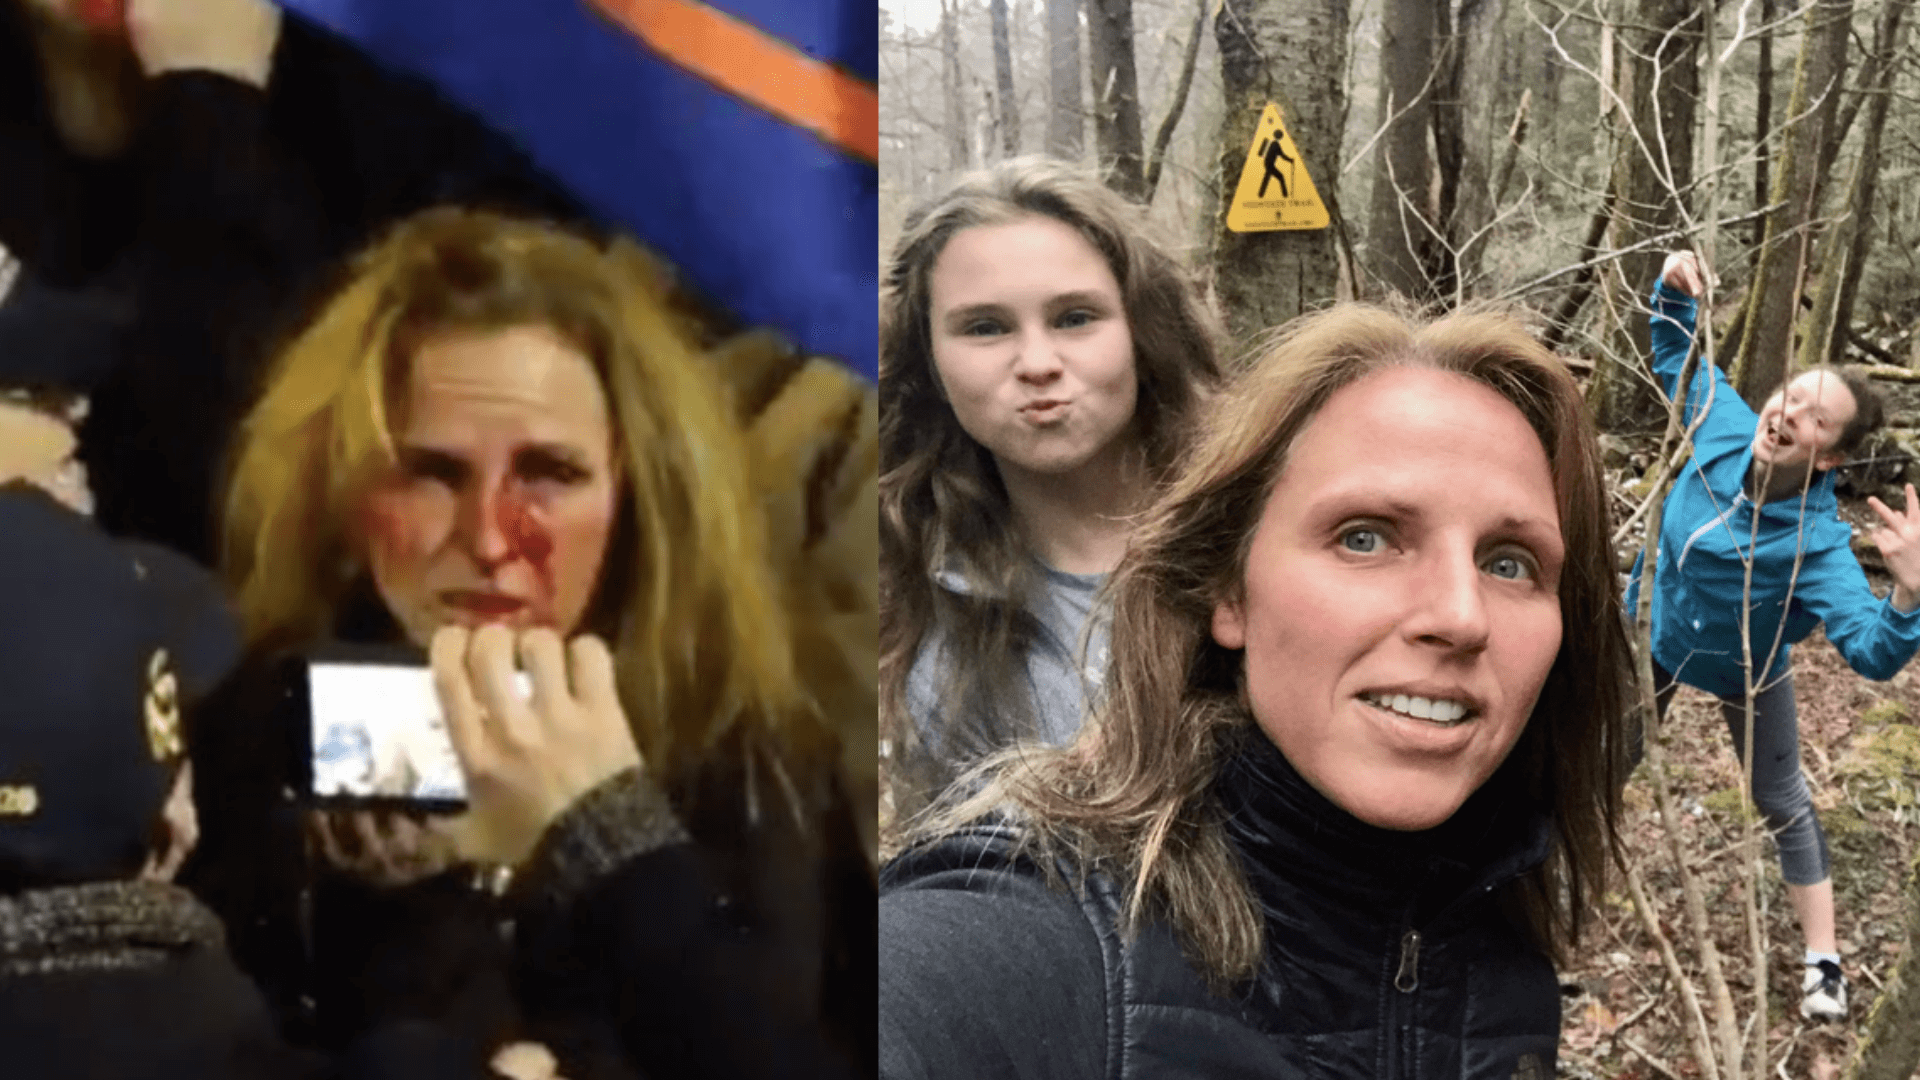 'Liberal Lesbian' outs her MAGA mother, aunt, and uncle as Capitol rioters